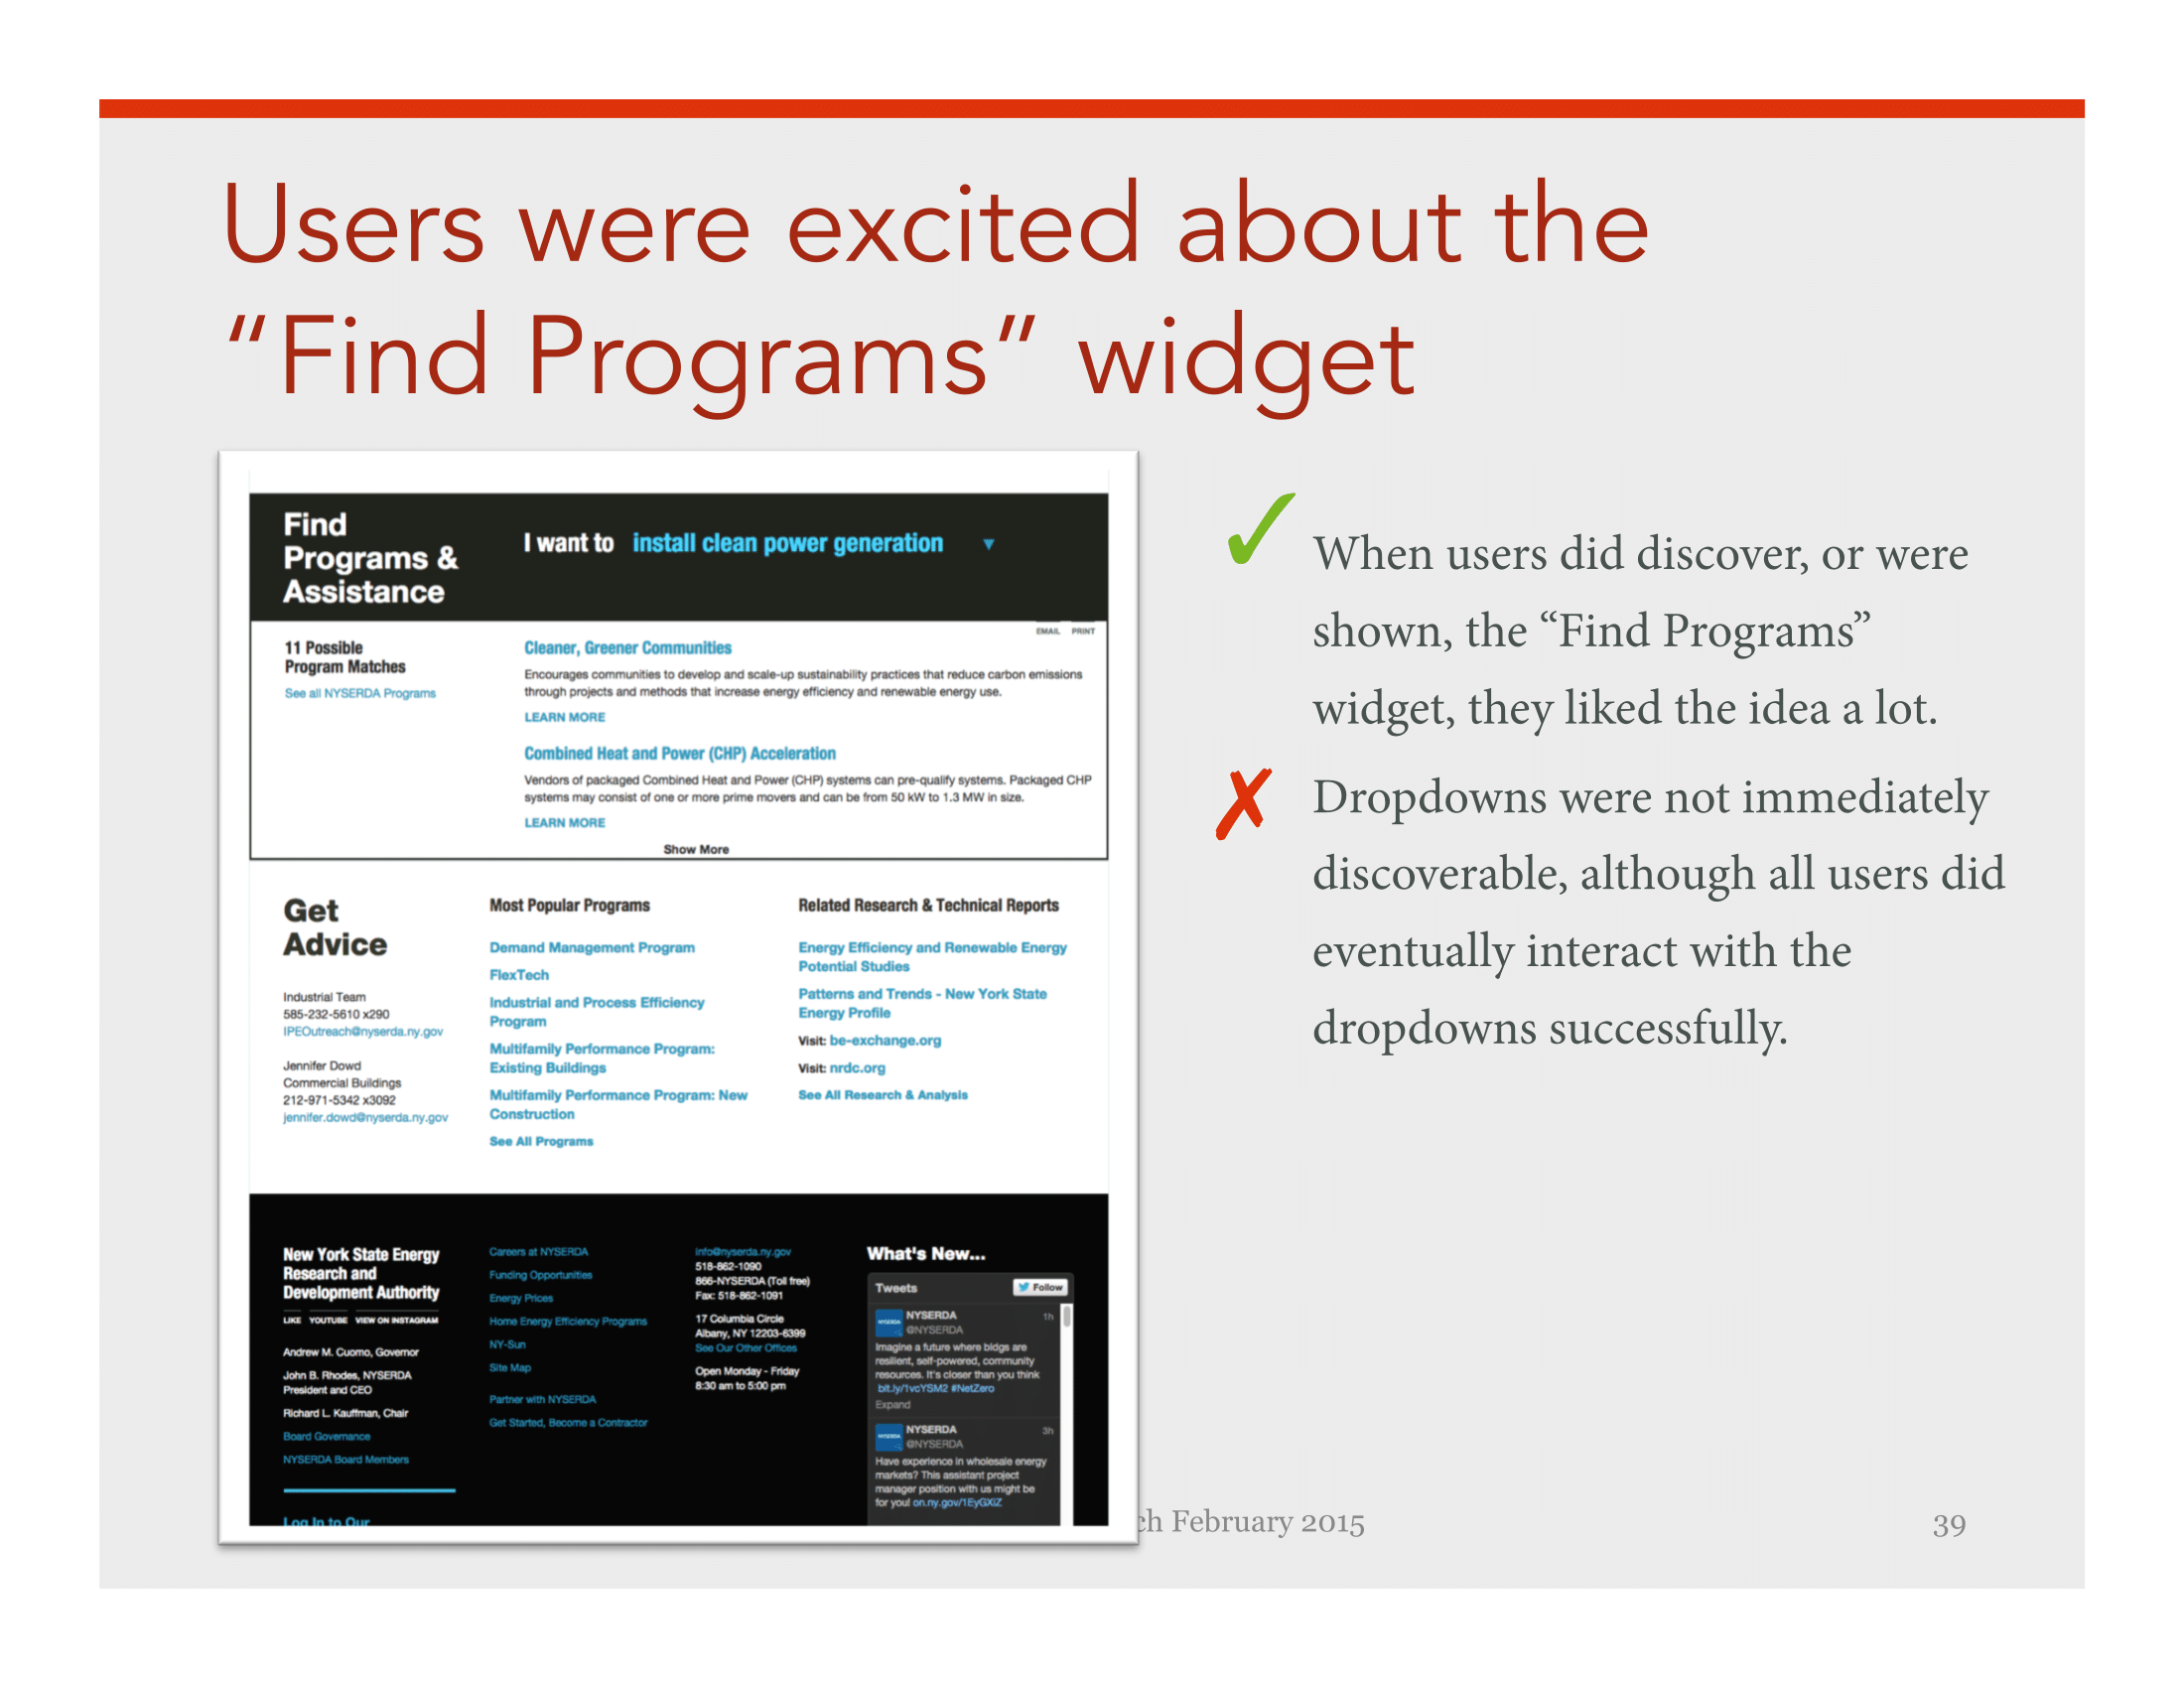 NYSERDA_Usability_Findings_Feb2015_PRESENTED 39-1.png